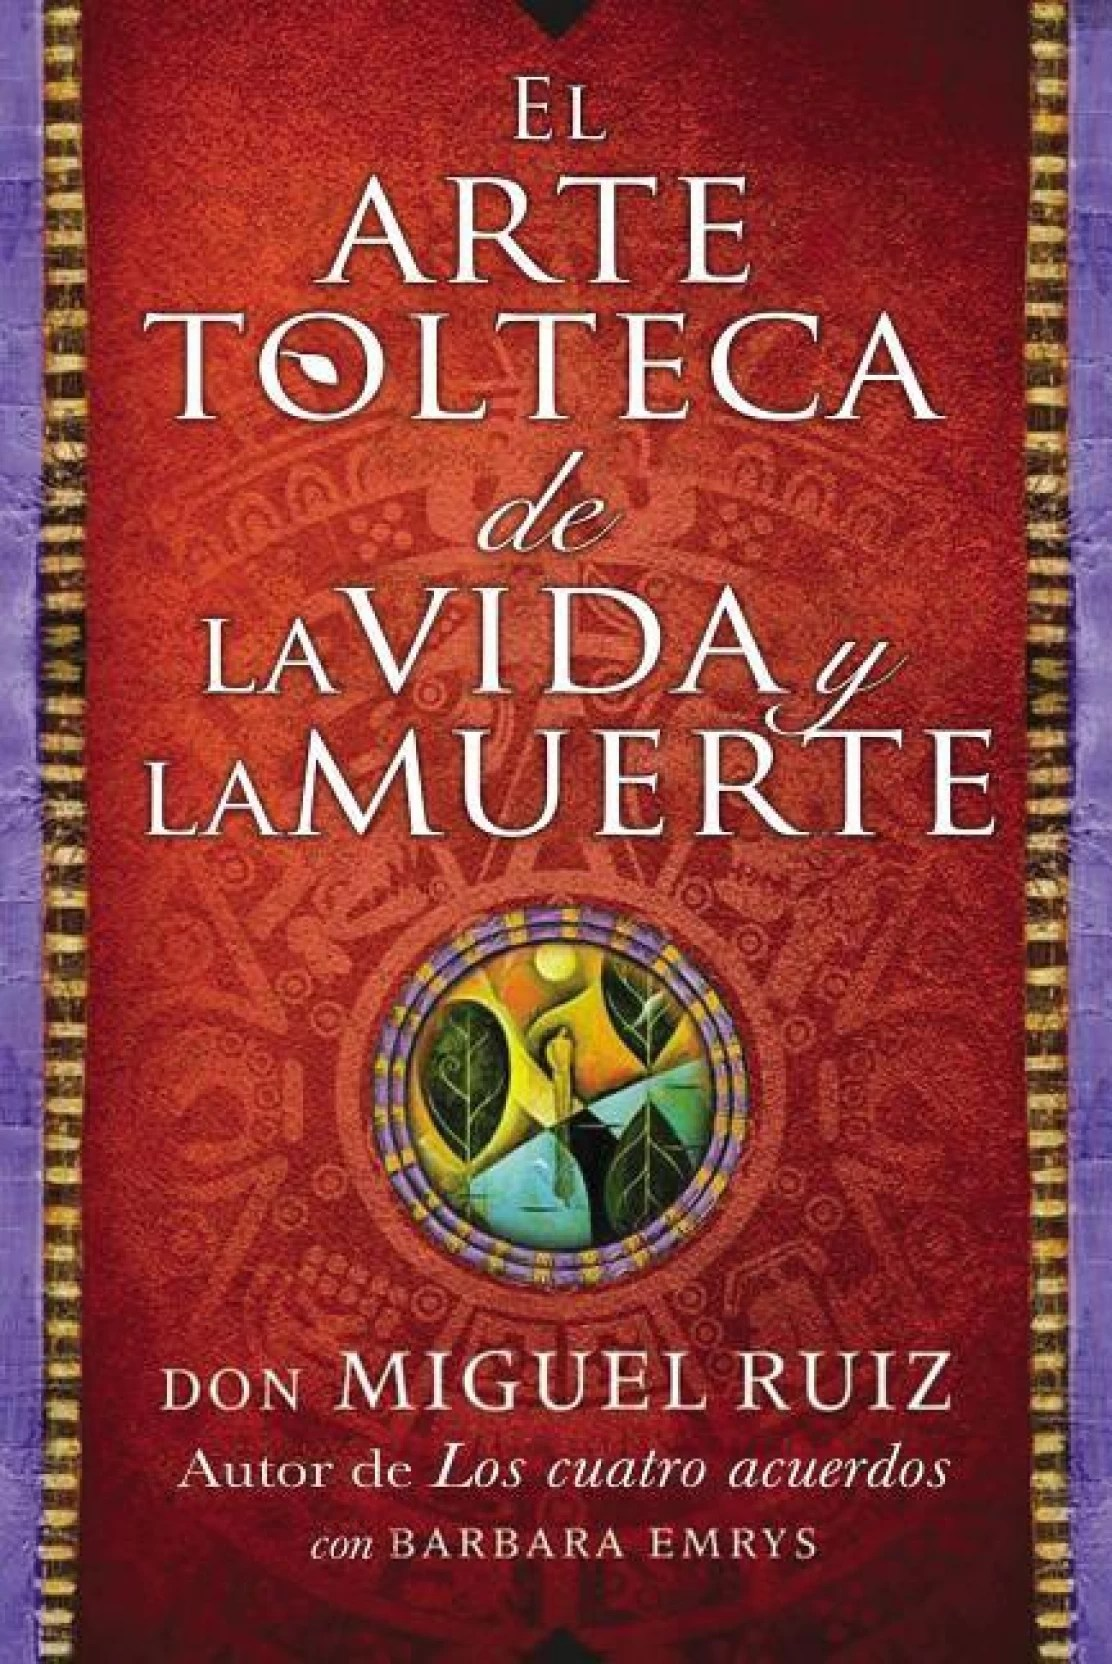 La Arte In Spanish El Arte Tolteca De La Vida Y La Muerte The Toltec Art Of Life And